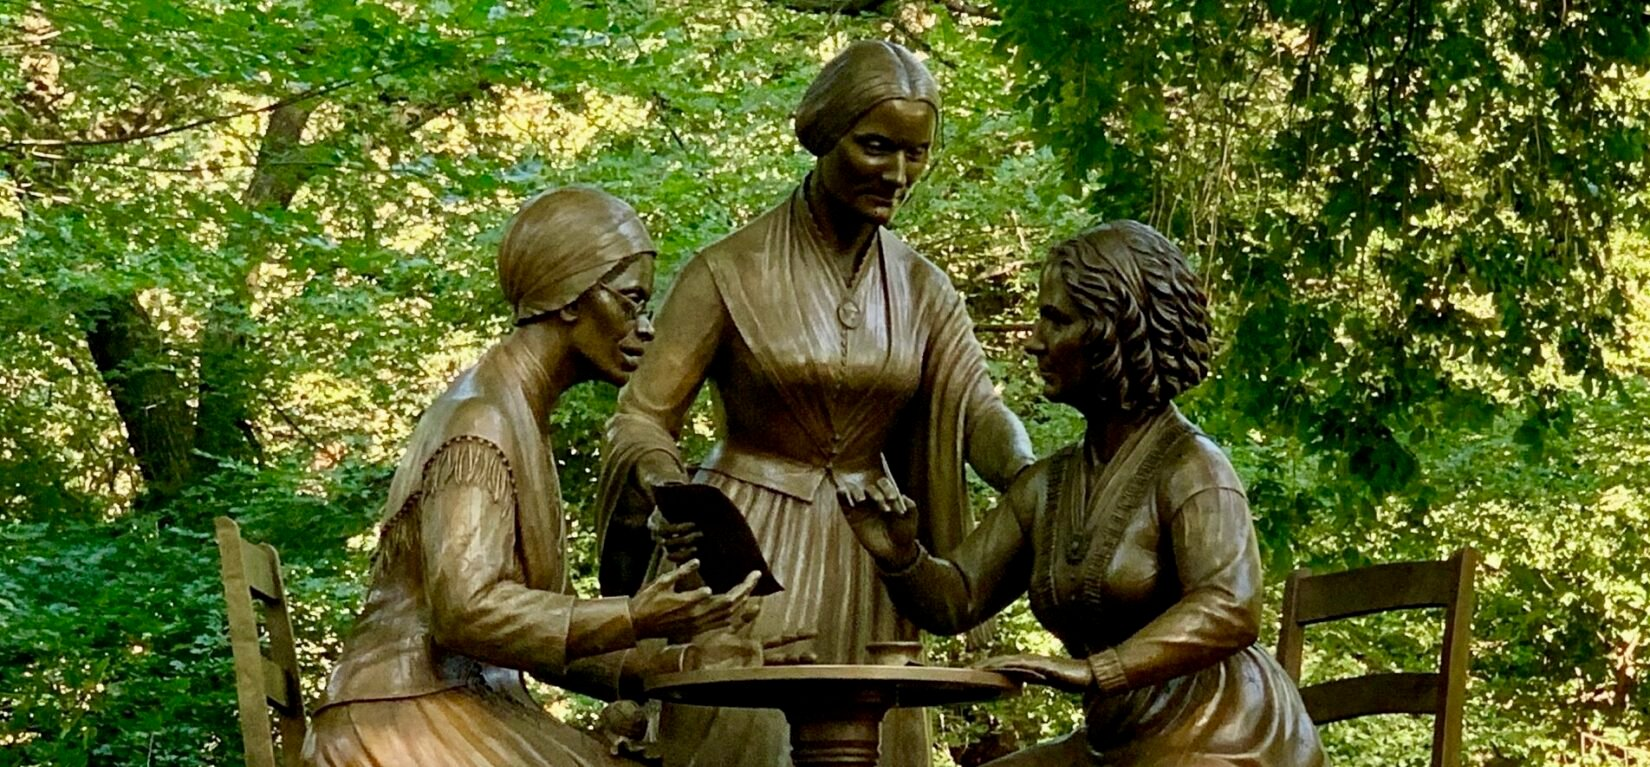 The bronze figures of Sojourner Truth, Susan B. Anthony, and Elizabeth Cady Stanton